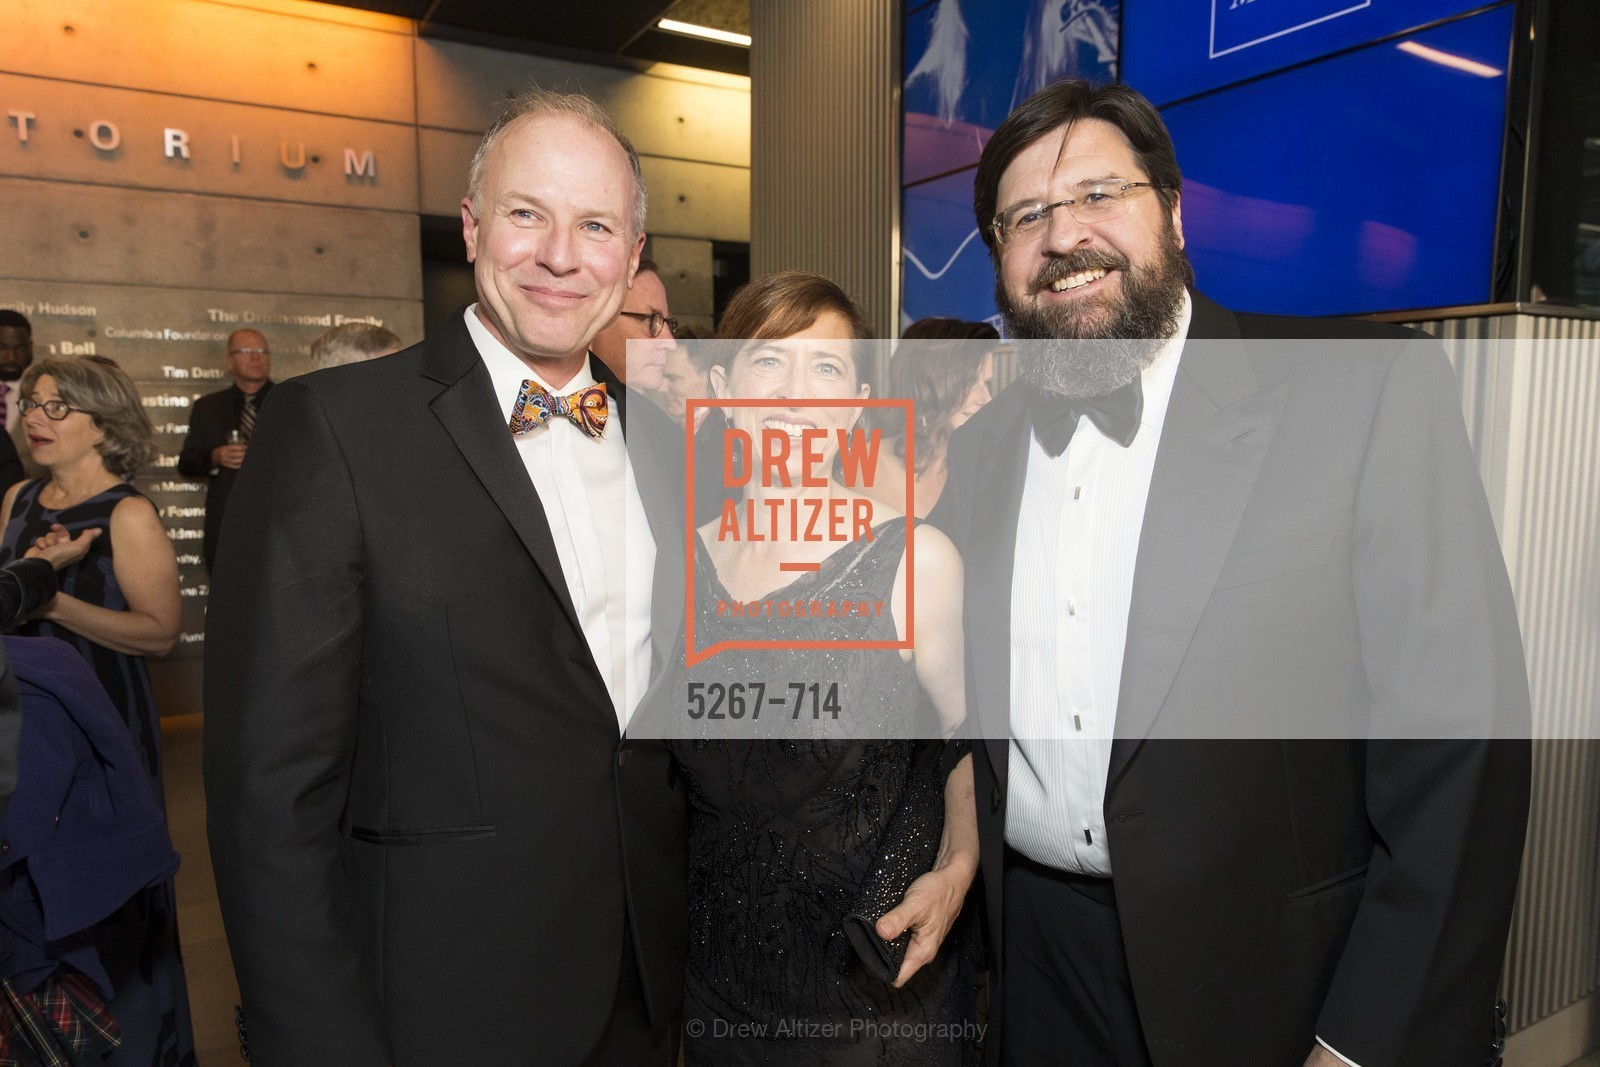 Don Derheim, Claire Ernst, Al Bedecarre, SFJAZZ Gala 2015 Honors Joni Mitchell with Lifetime Achievement Award, US, May 8th, 2015,Drew Altizer, Drew Altizer Photography, full-service agency, private events, San Francisco photographer, photographer california